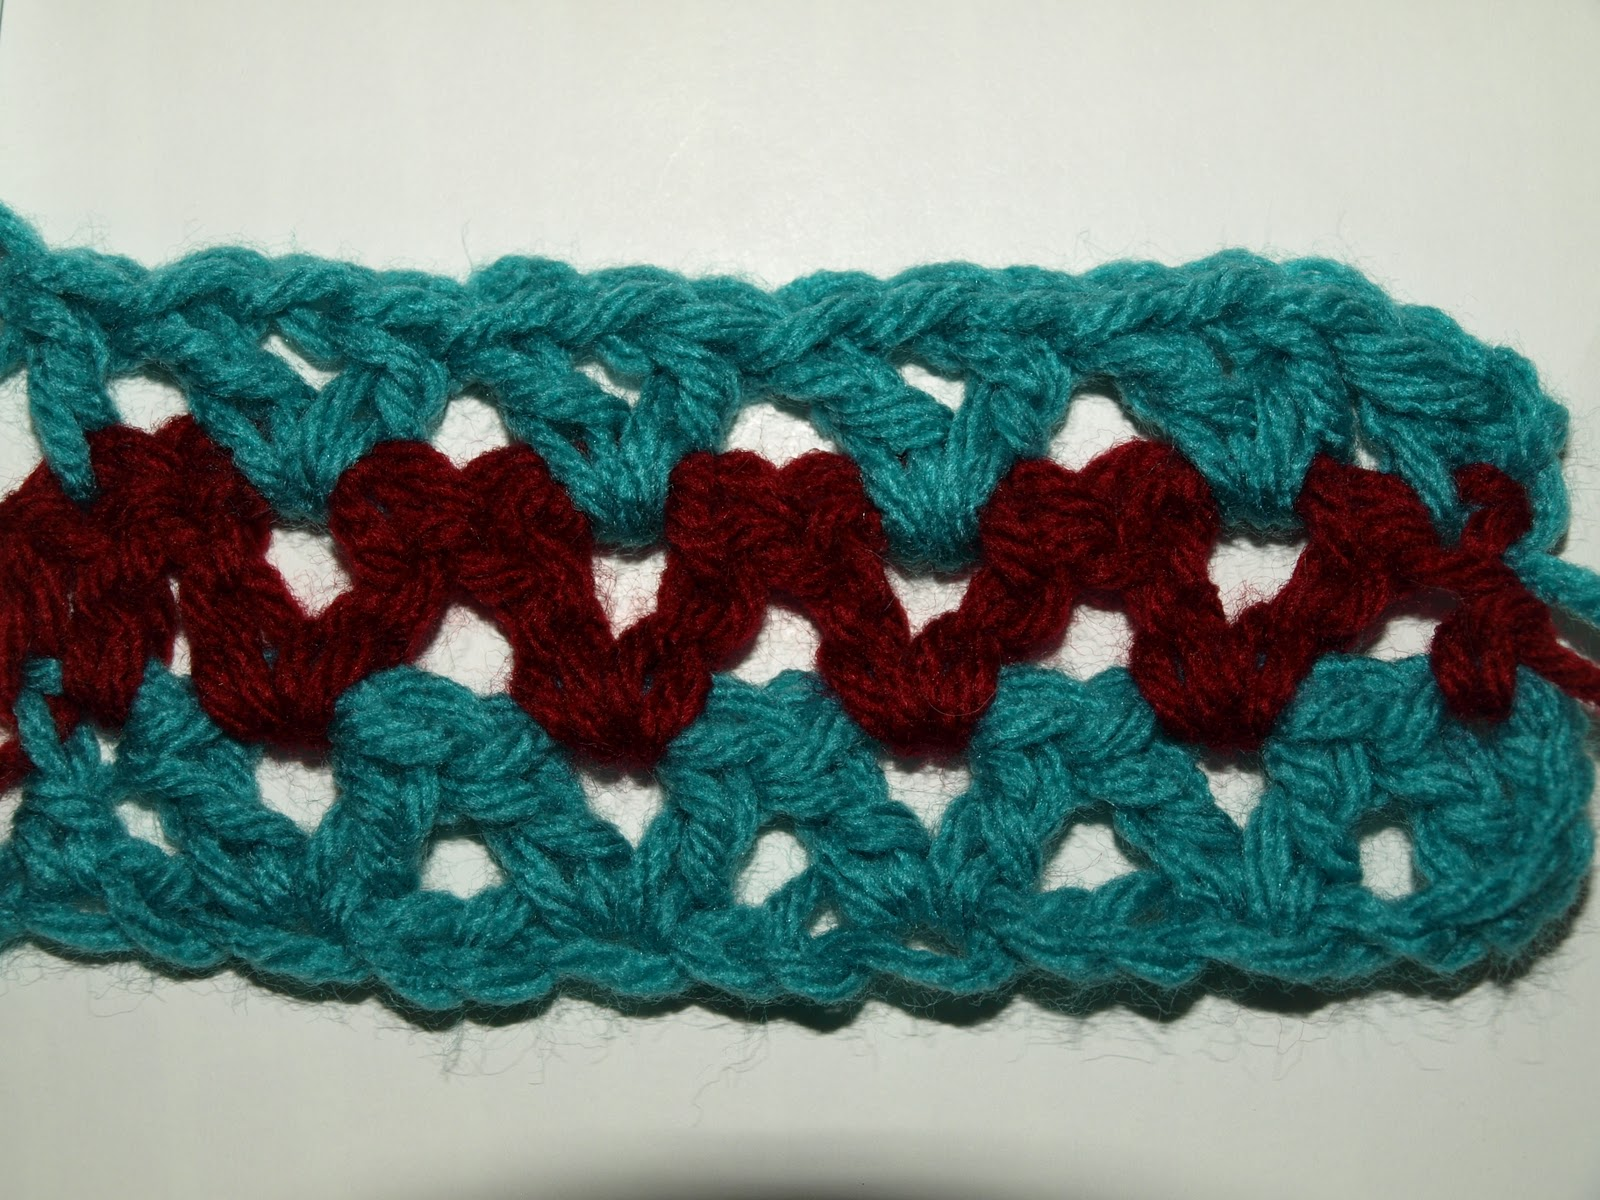 CrochetByKarin: Double Crochet V Stitch